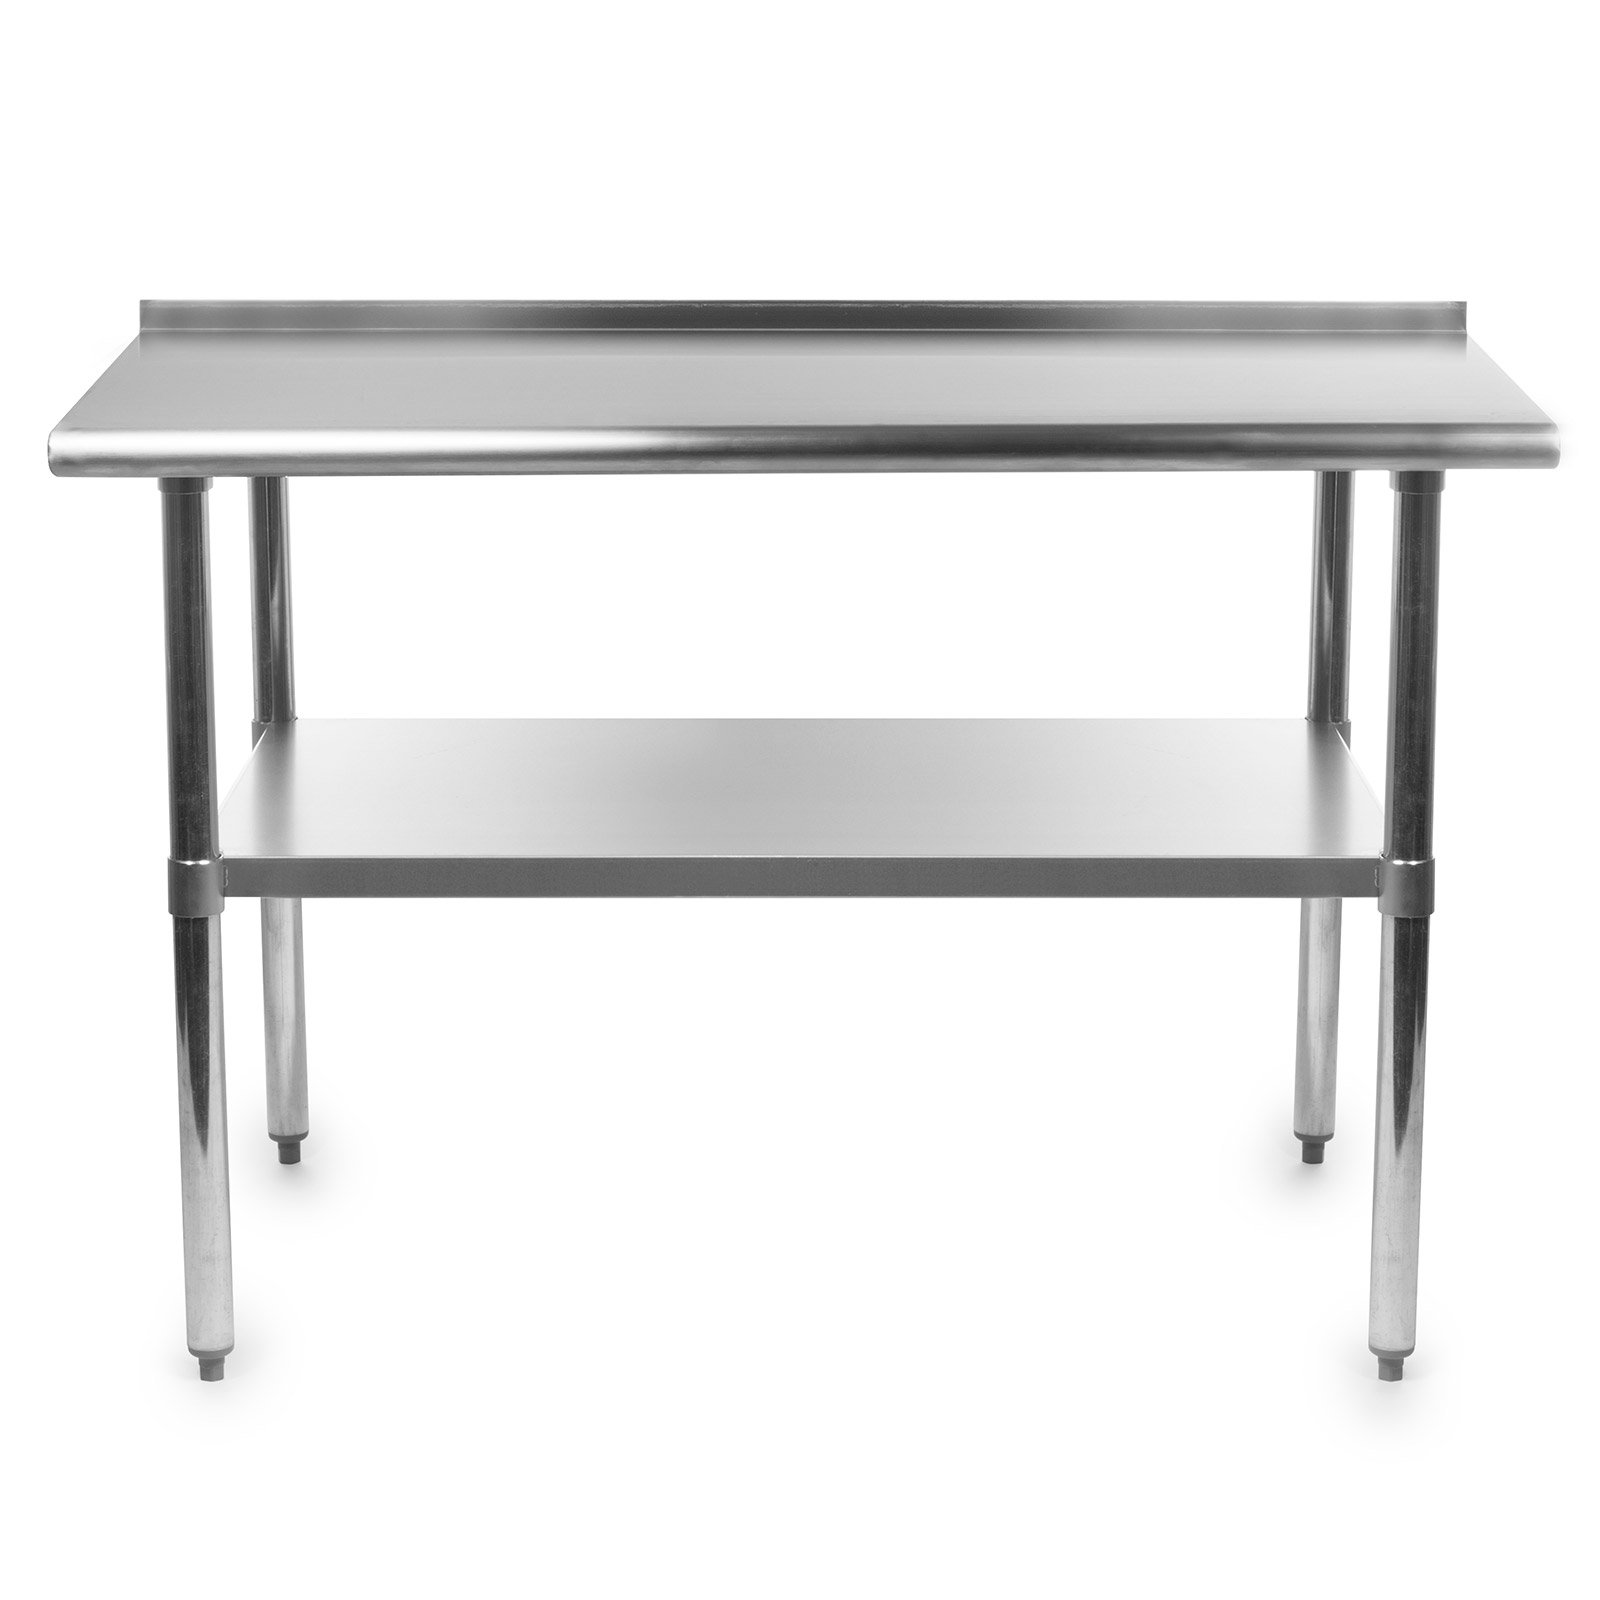 Gridmann Stainless Steel Commercial Kitchen Prep & Work Table with Backsplash, 48 x 24 Inches by Gridmann (Image #2)